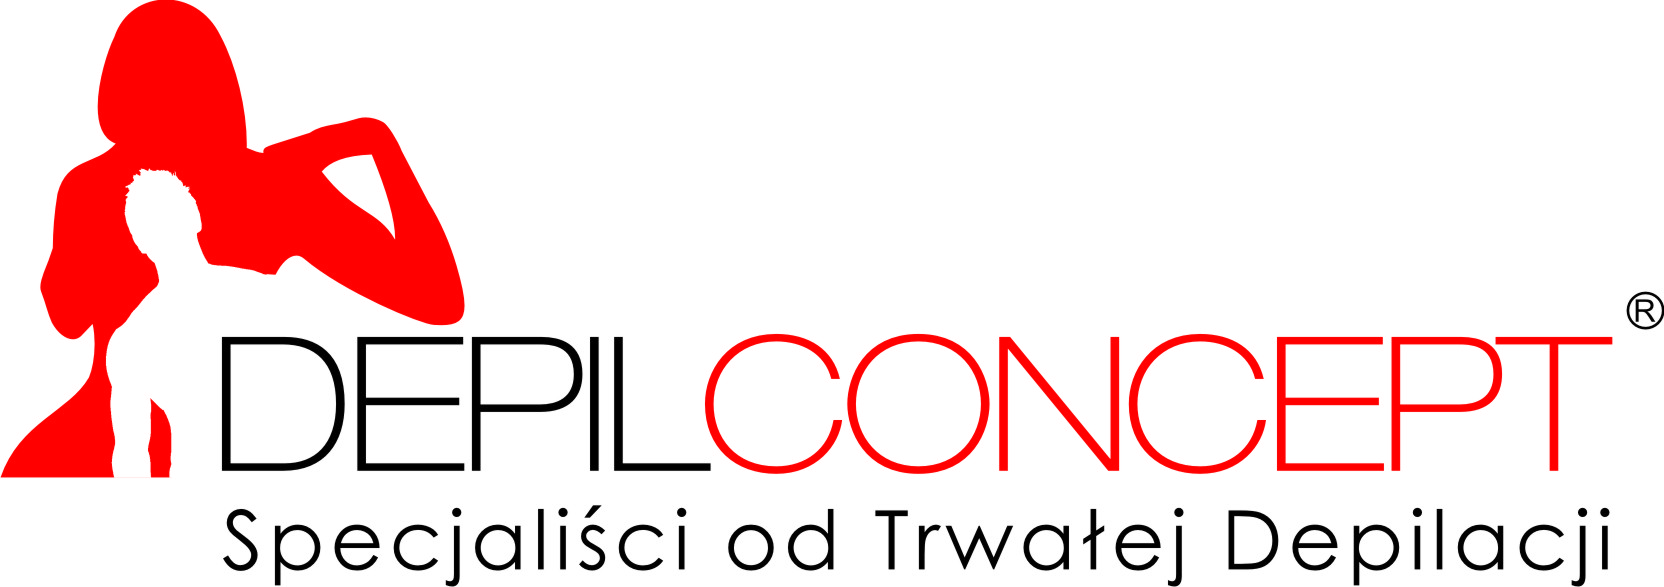 Salon DepilConcept